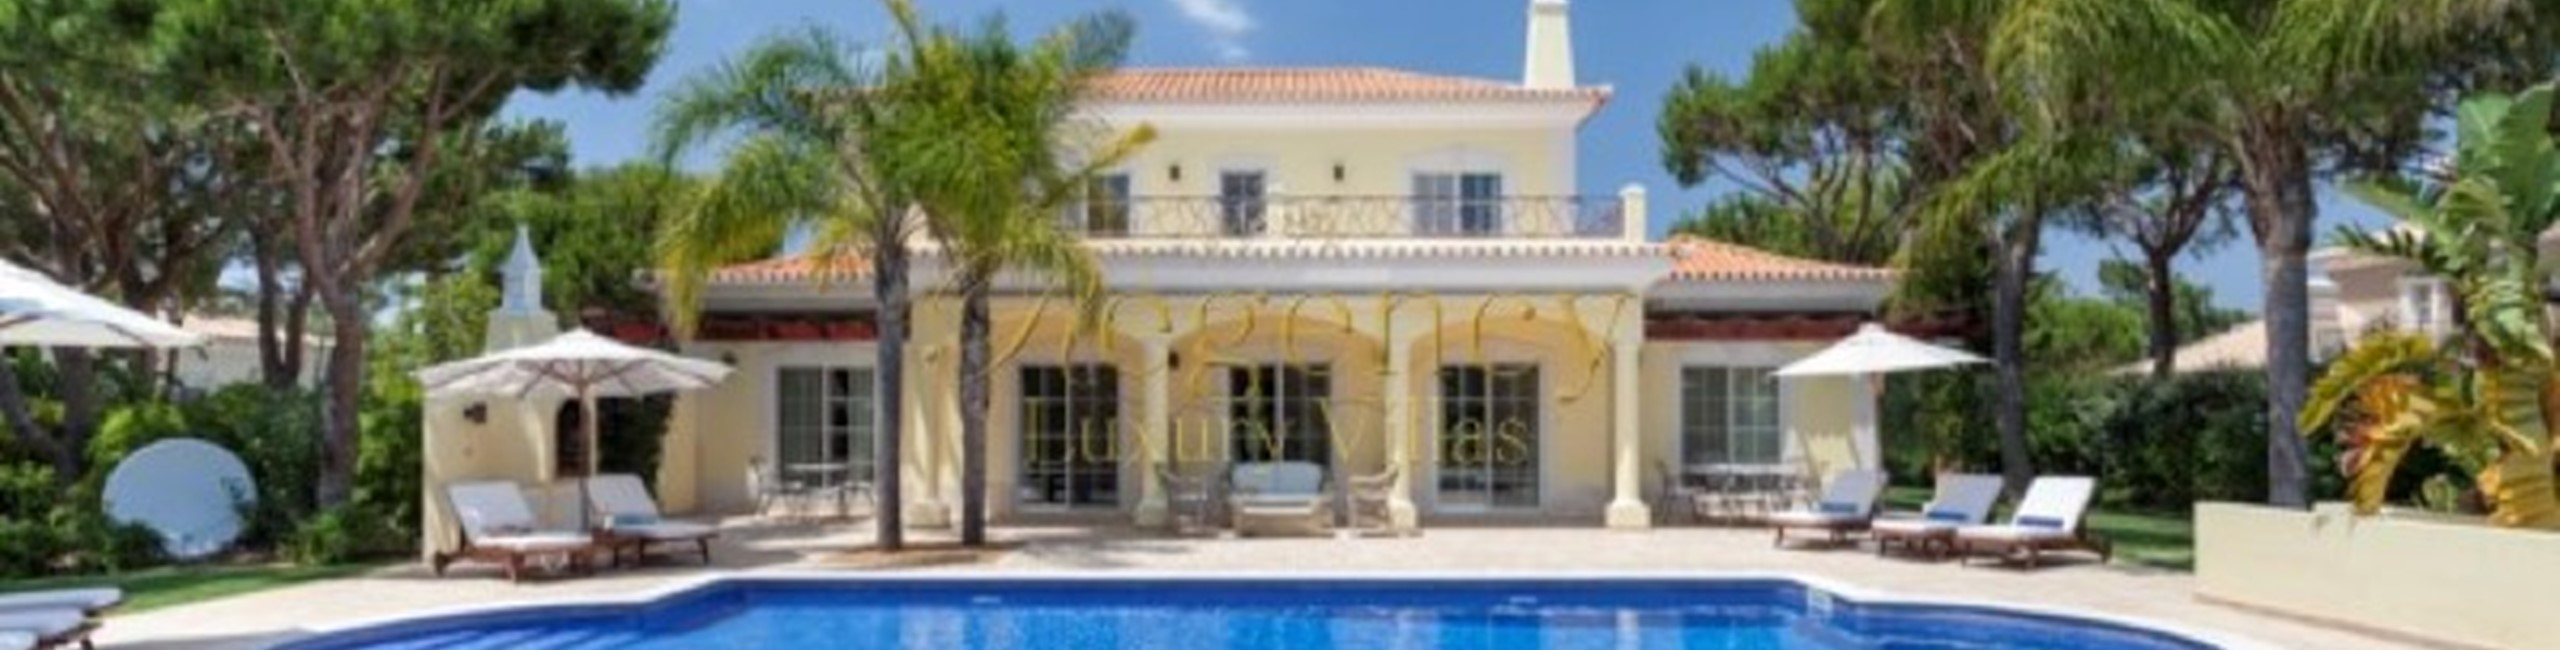 Quinta Do Lago Luxury 4 Bedroom Villa To Rent With Great Location RLV 1